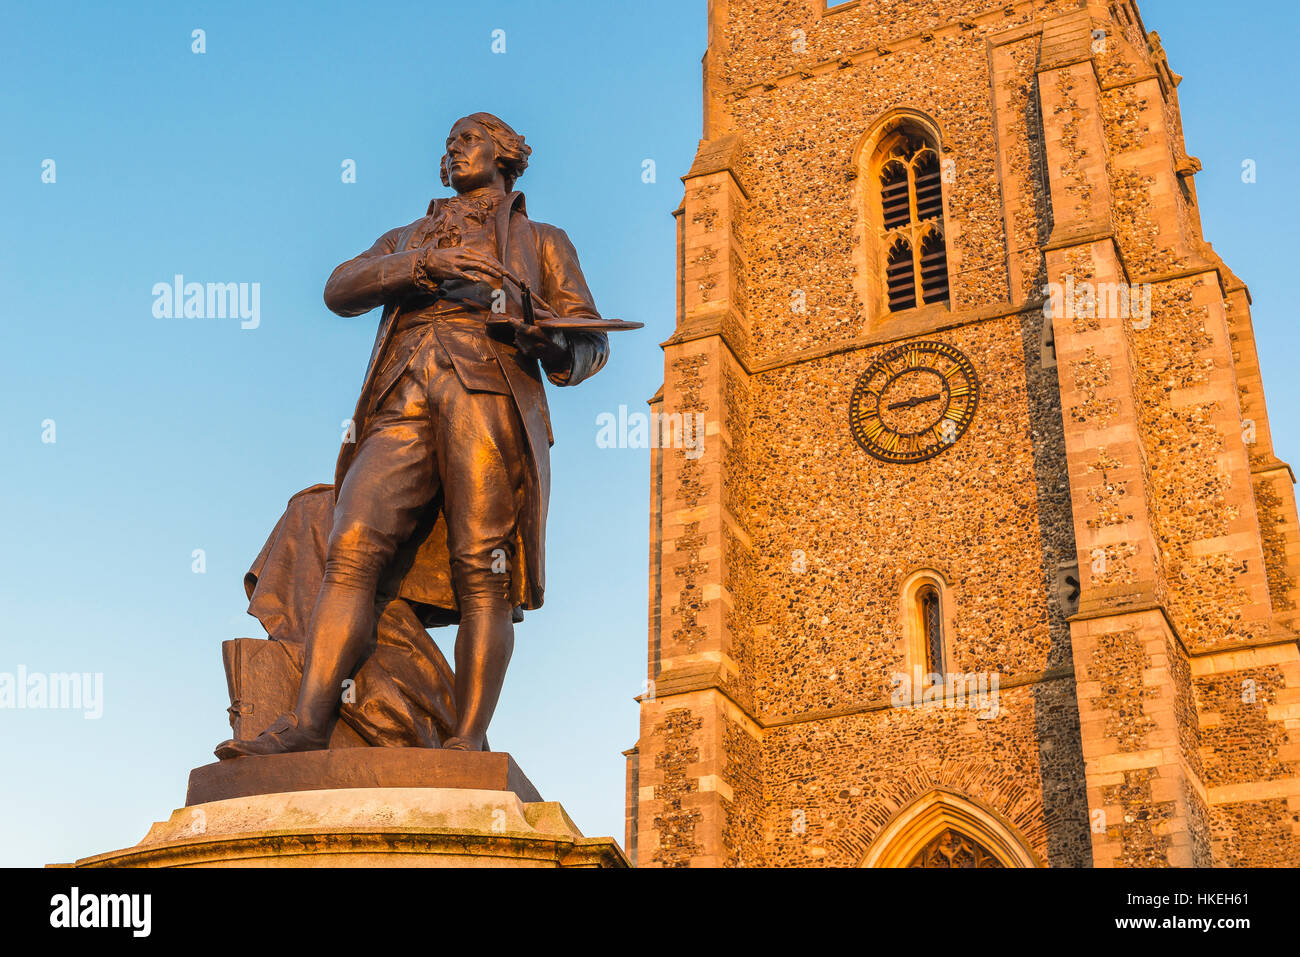 Sudbury Suffolk, statue of artist Thomas Gainsborough and tower of St Peter's Church, Market Hill, Sudbury, - Stock Image